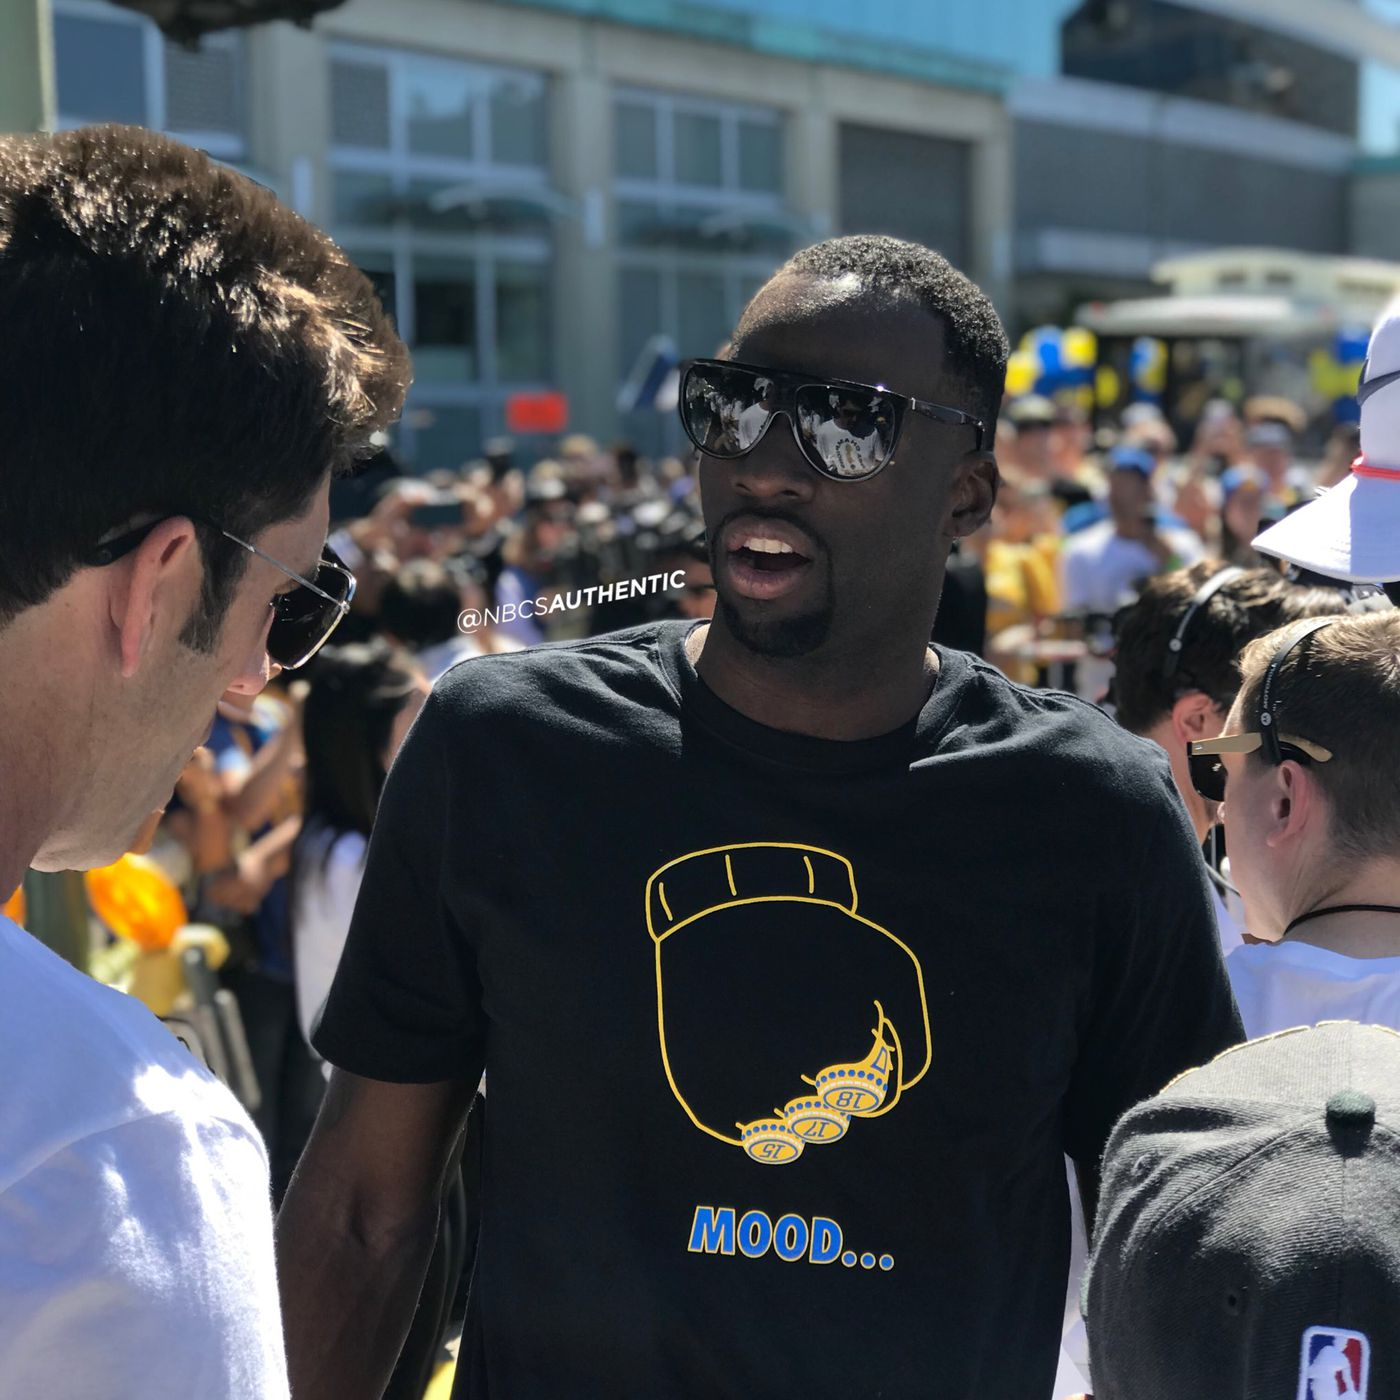 9a8afe4cc2b Draymond Green trolls LeBron James with Arthur meme shirt at parade ...